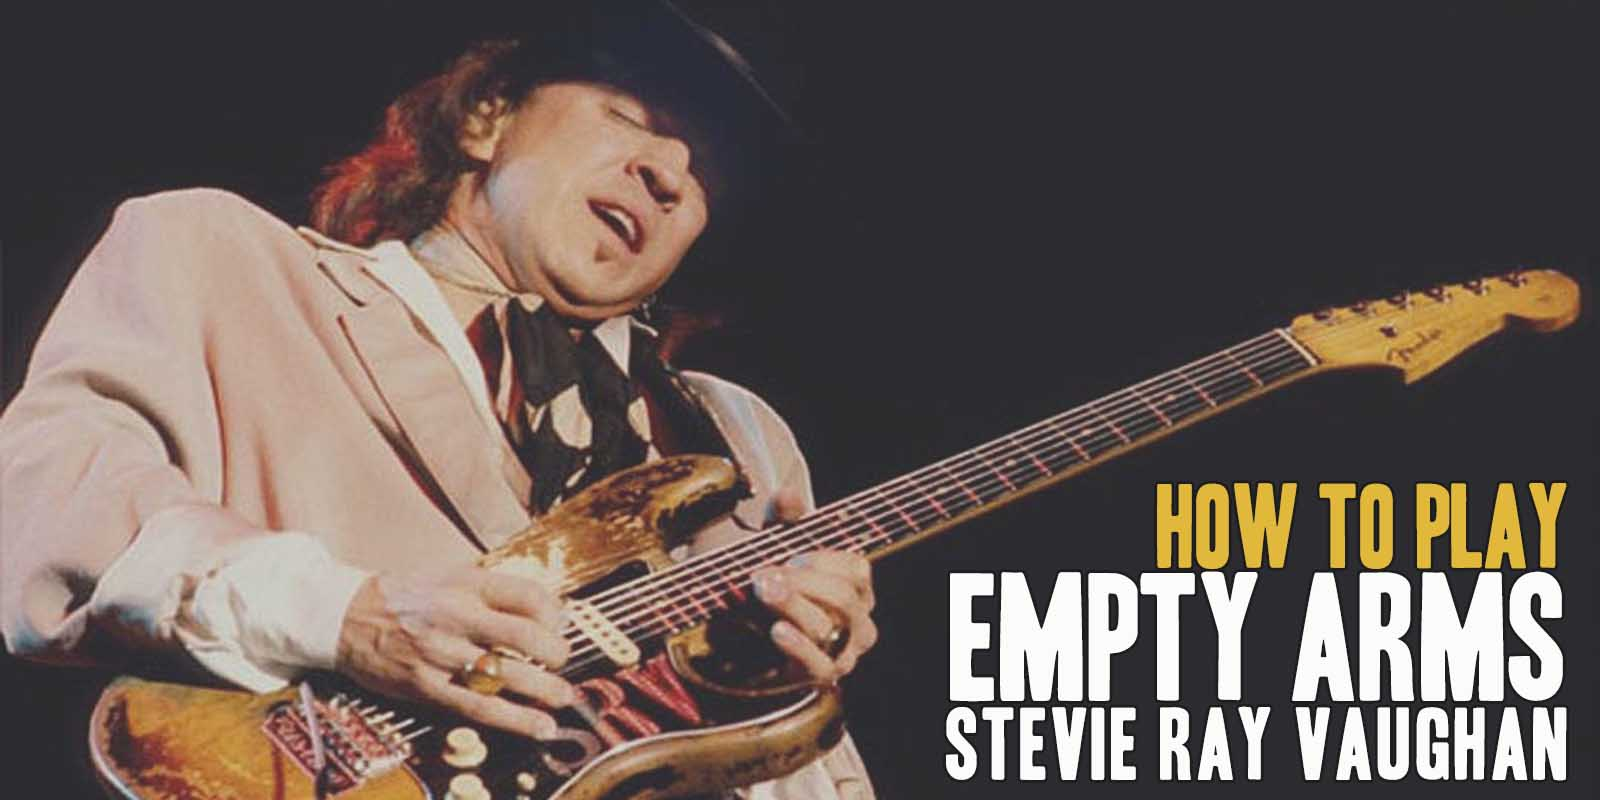 How to play Empty Arms by Stevie Ray Vaughan. A great song of Texas Blues Guitar. Music Score included in Empty Arms pdf and Empty Arms gpx files